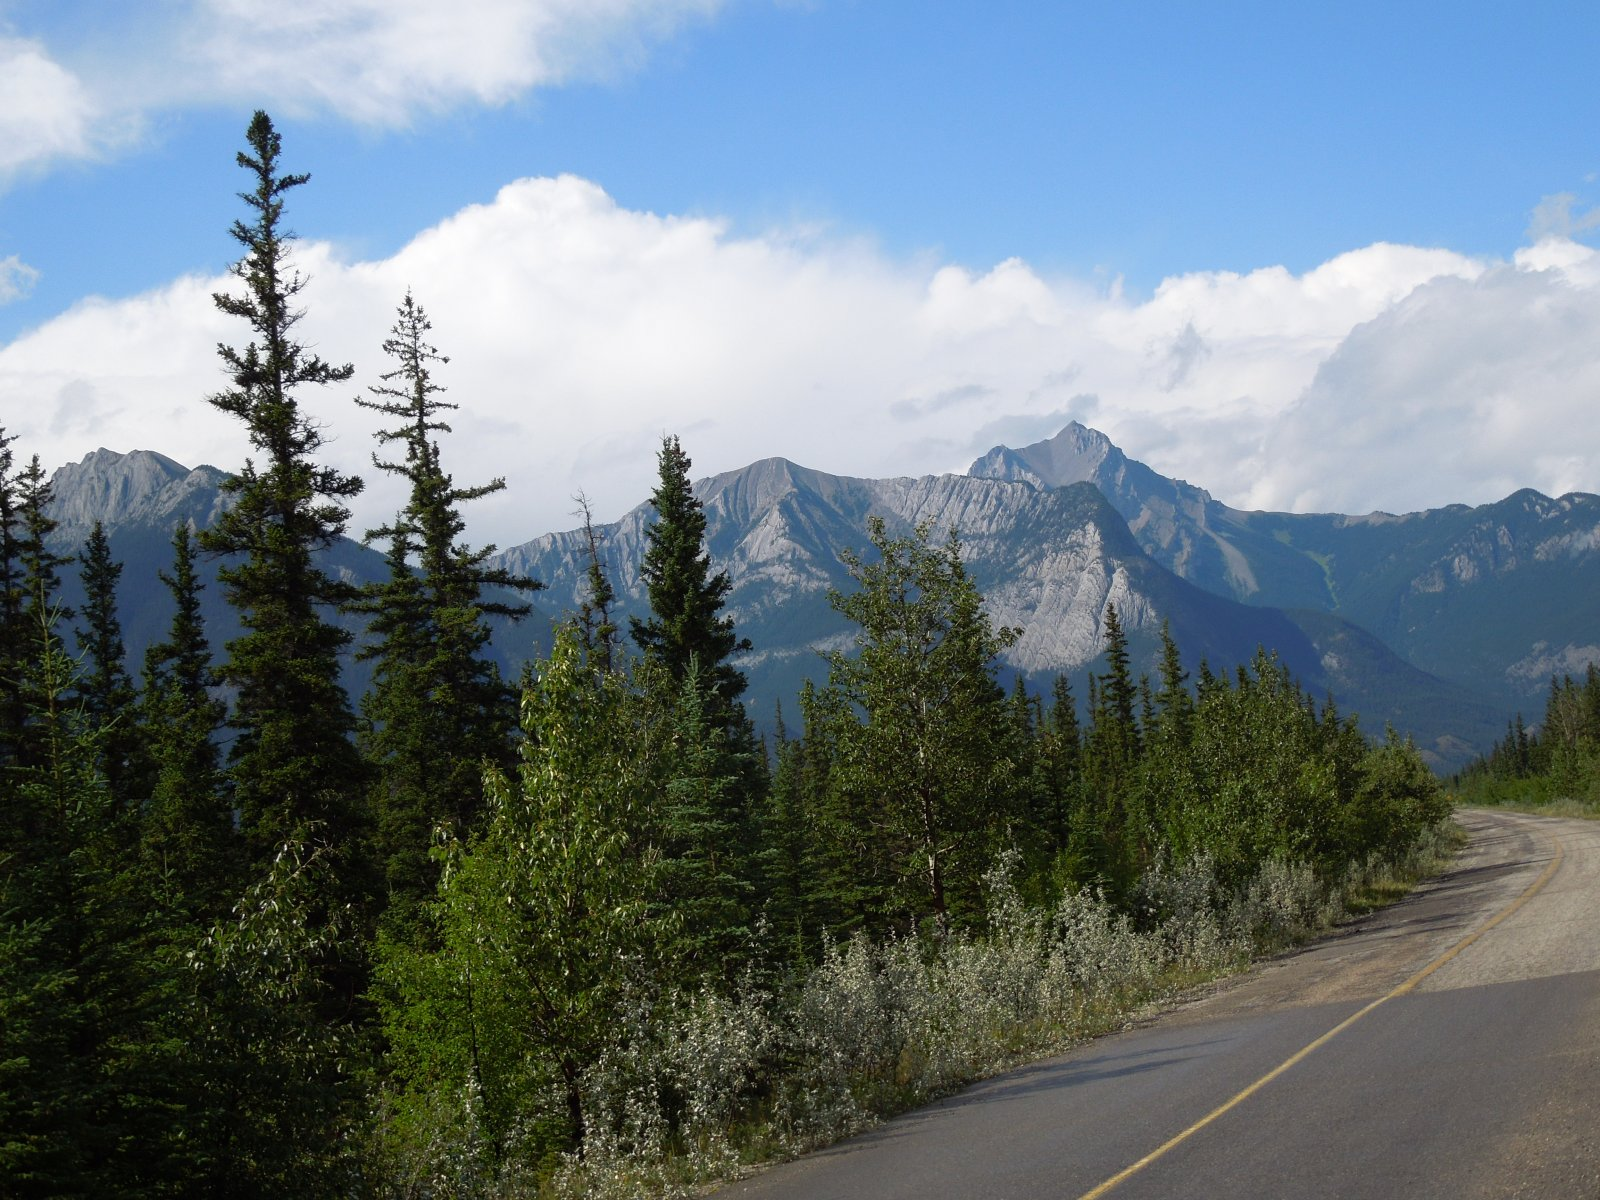 Click image for larger version  Name:Dawson Creek to Icefield Parkway to Cochrane 045.jpg Views:61 Size:391.4 KB ID:222243